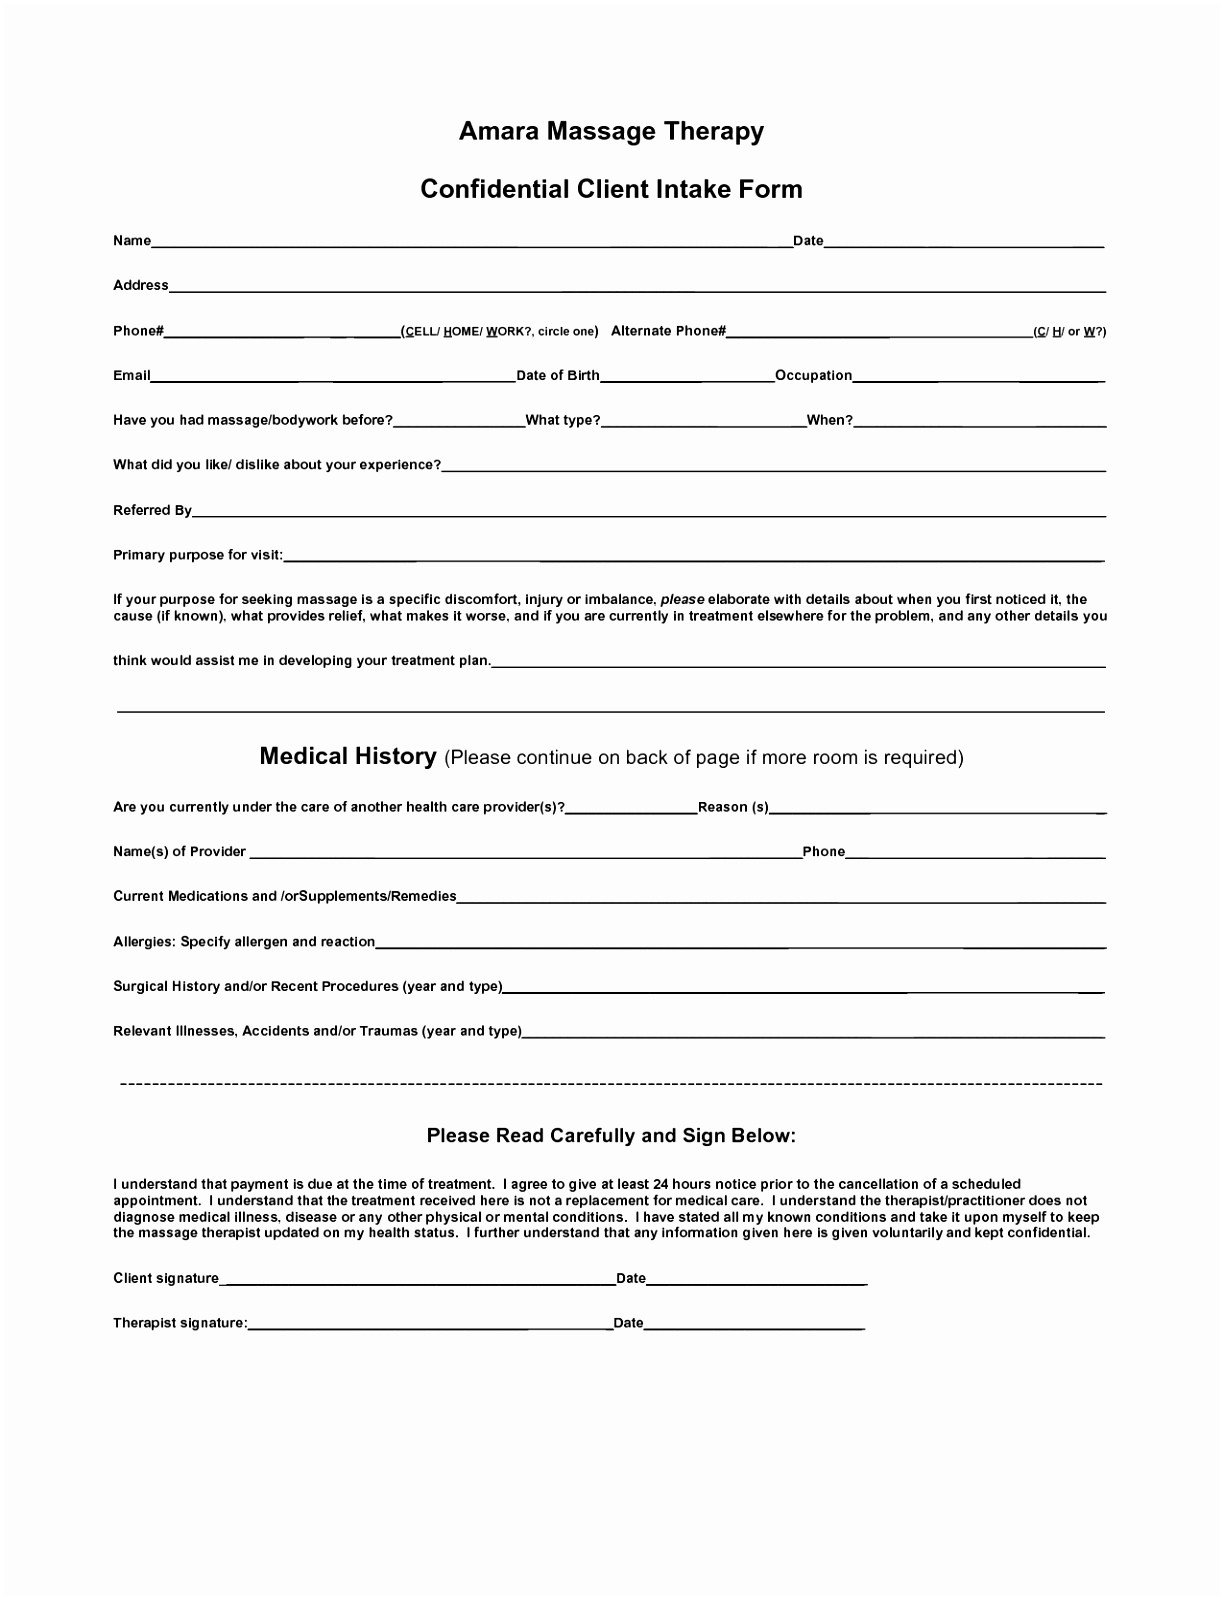 Intake form Template Word Client Intake forms Printable Client Intake form